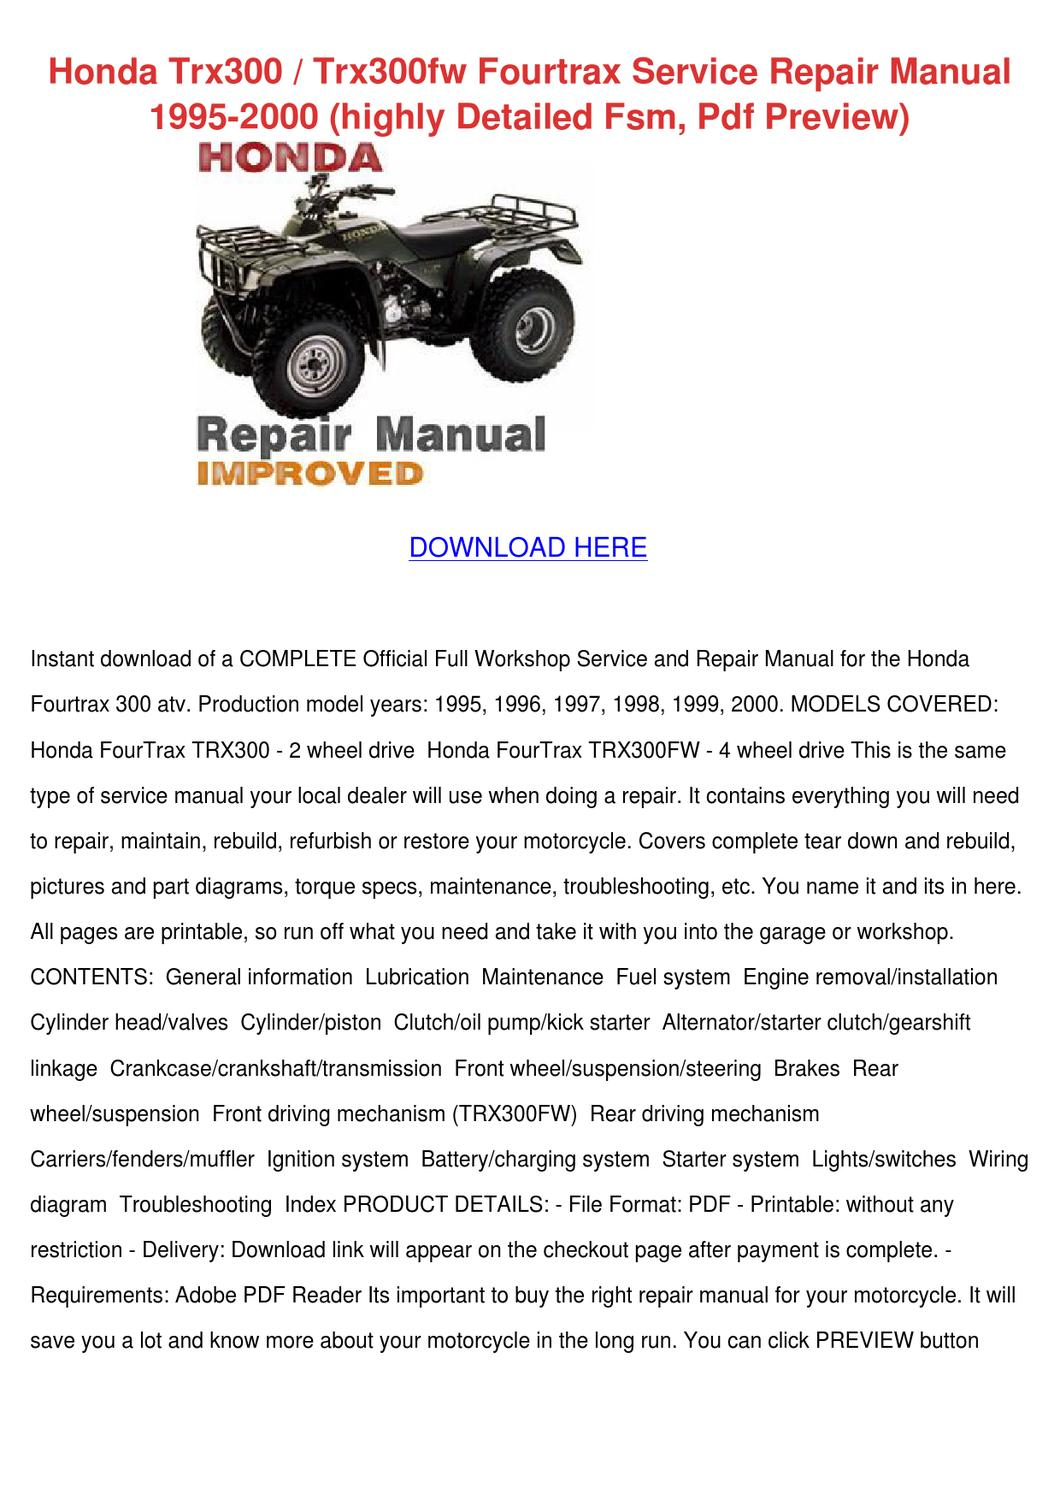 Honda Trx300 Trx300fw Fourtrax Service Repair By Juliusheim Issuu 2 4 Engine Diagram